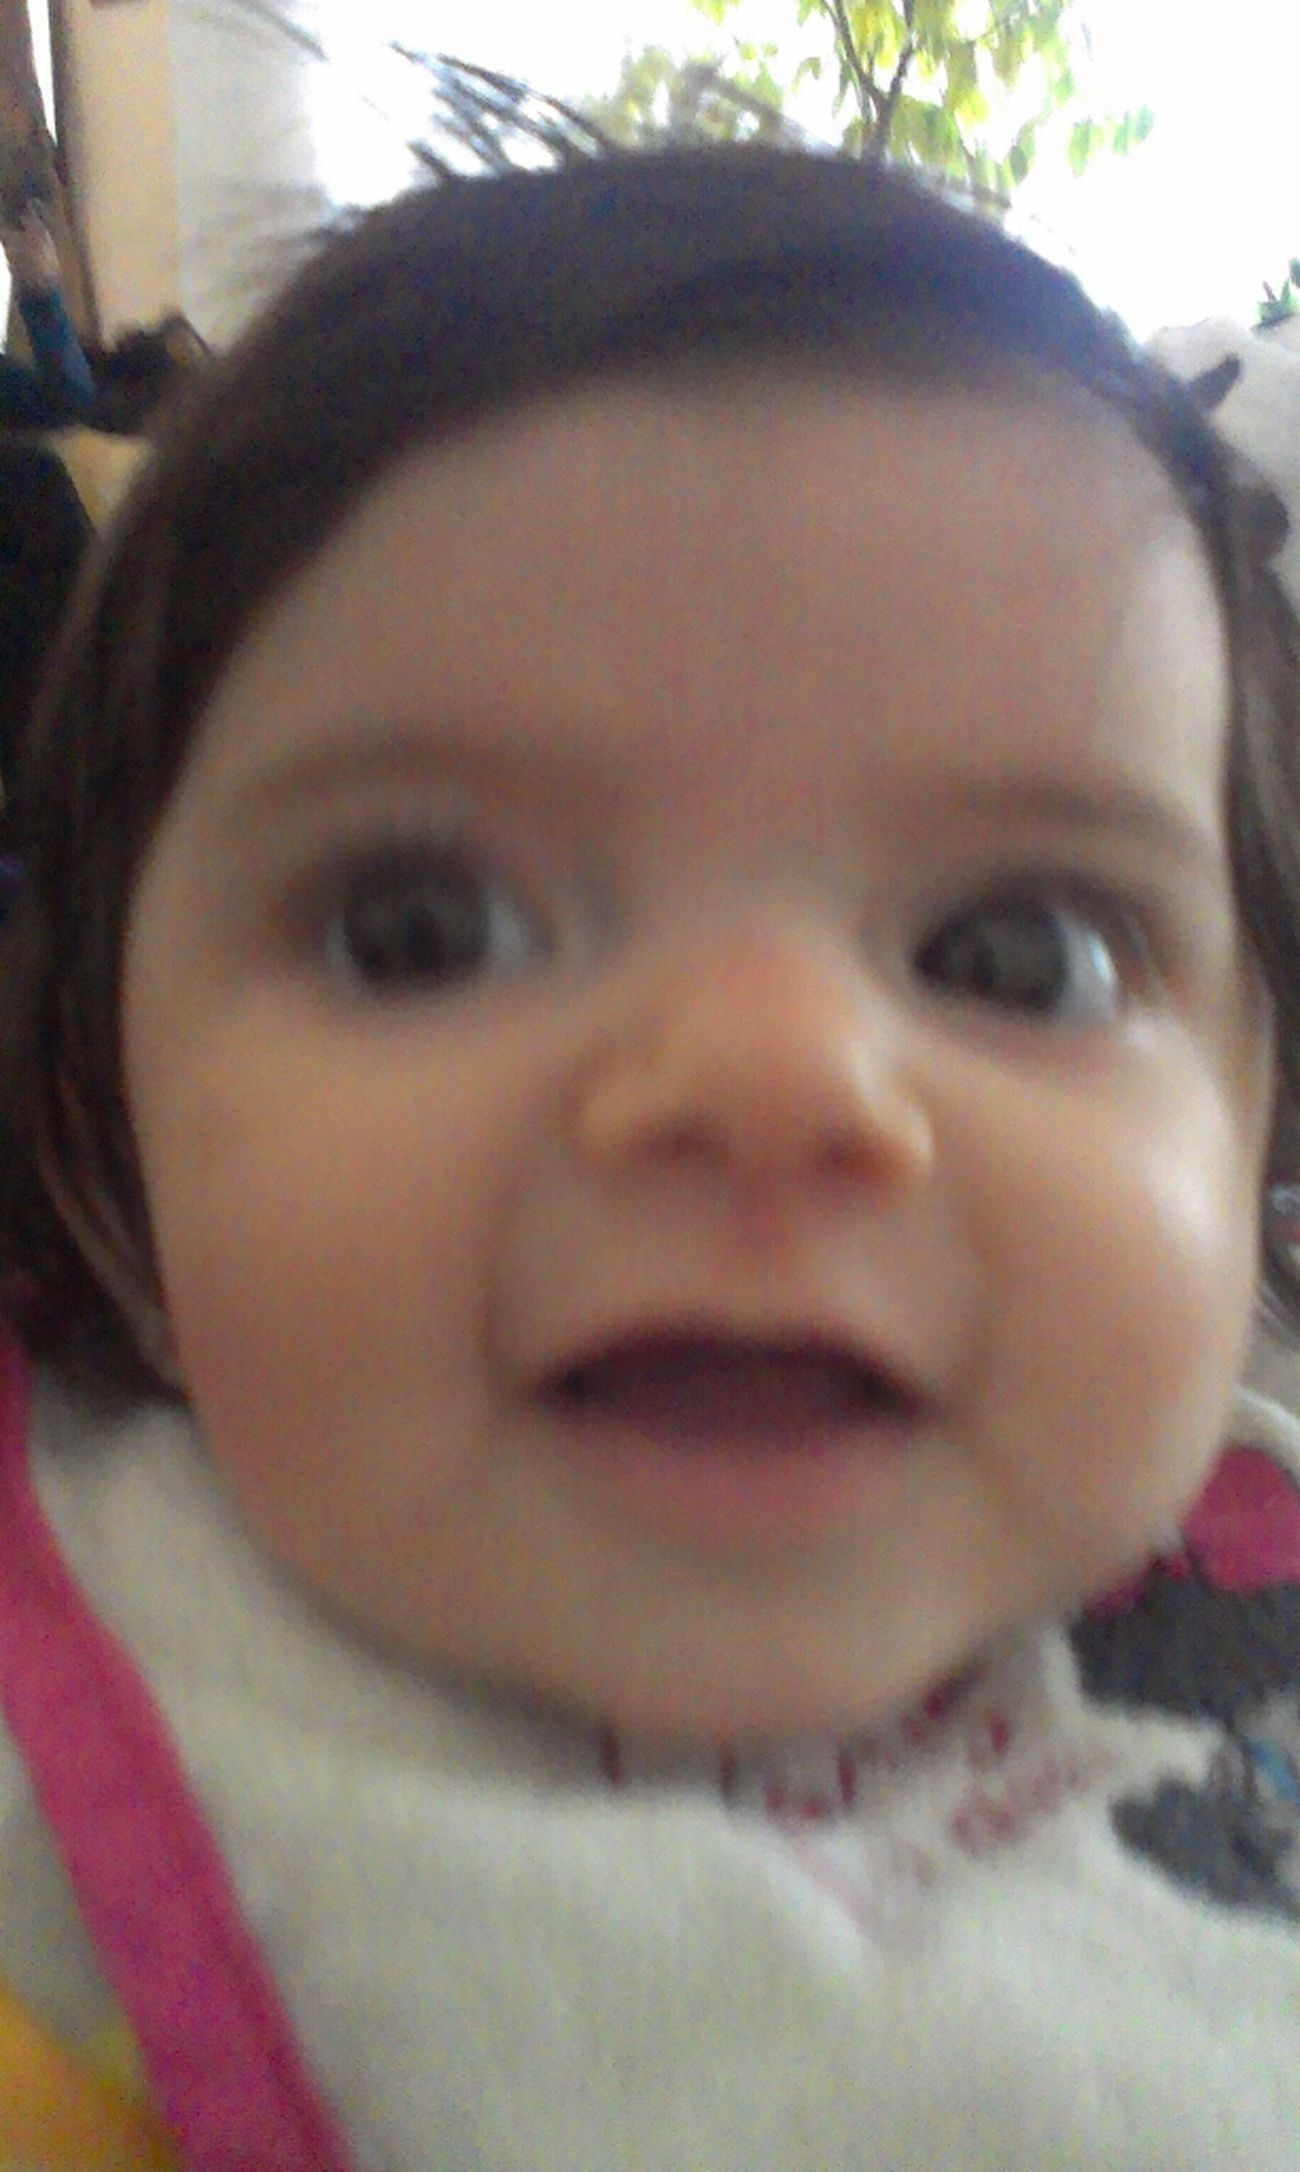 This Baby Always Puts A Smile On My Face. (: